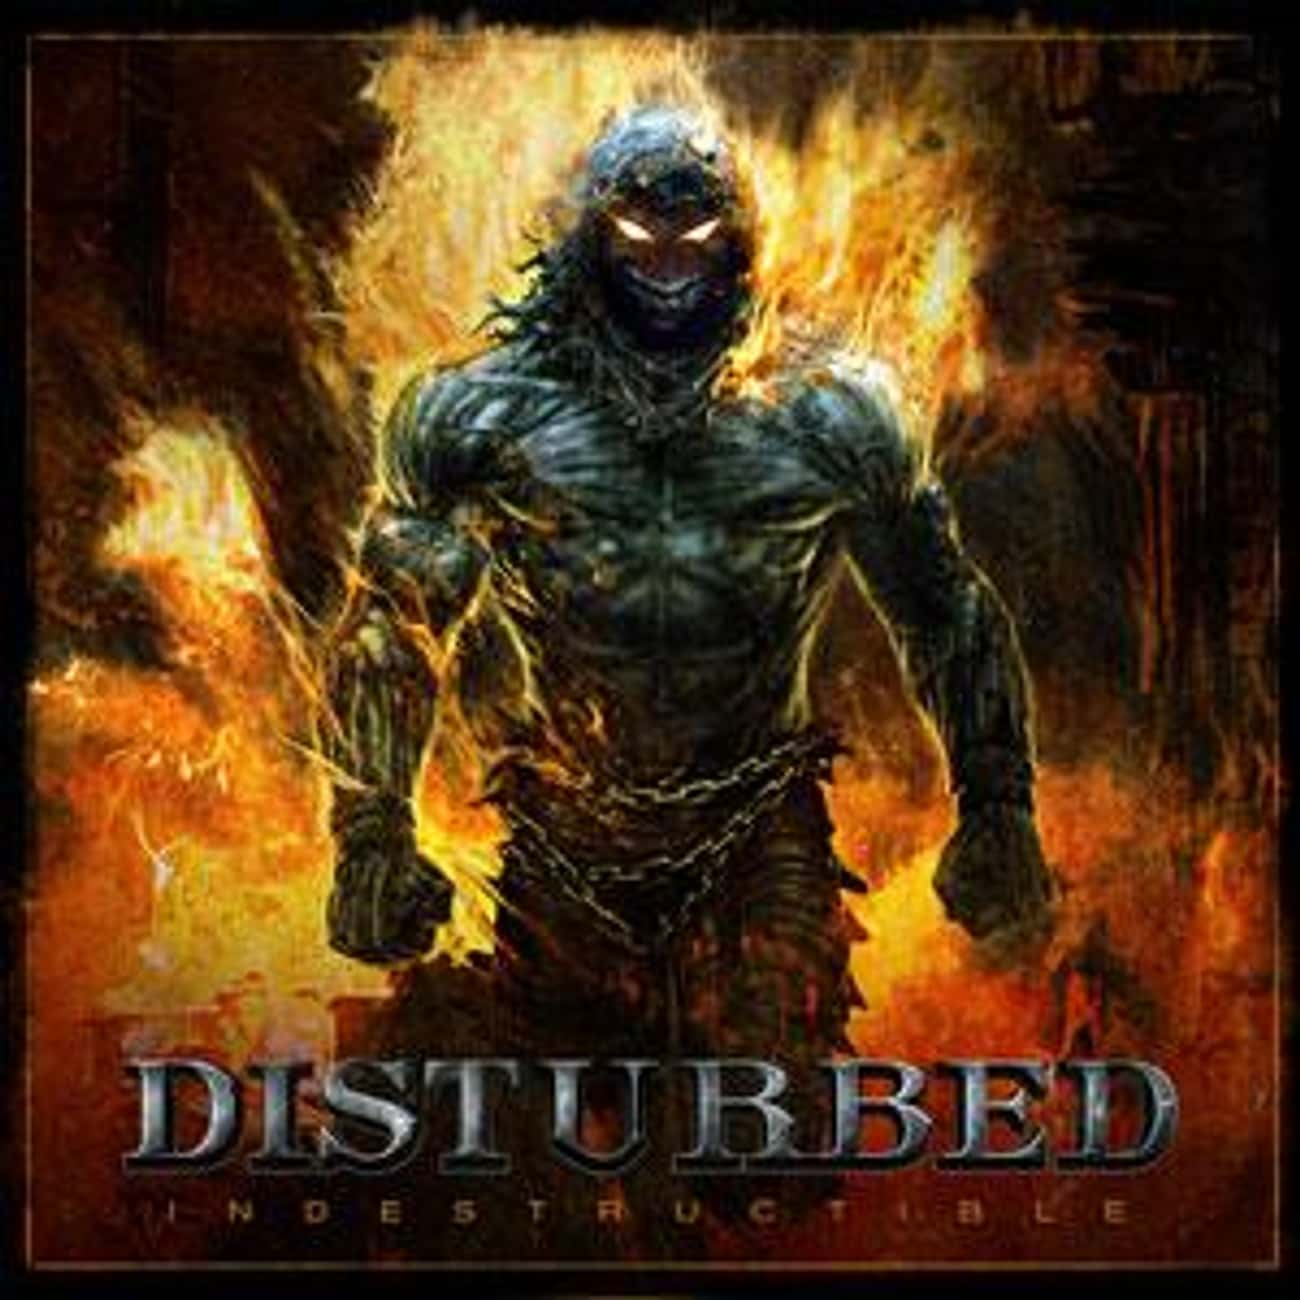 Indestructible is listed (or ranked) 2 on the list The Best Disturbed Albums of All Time